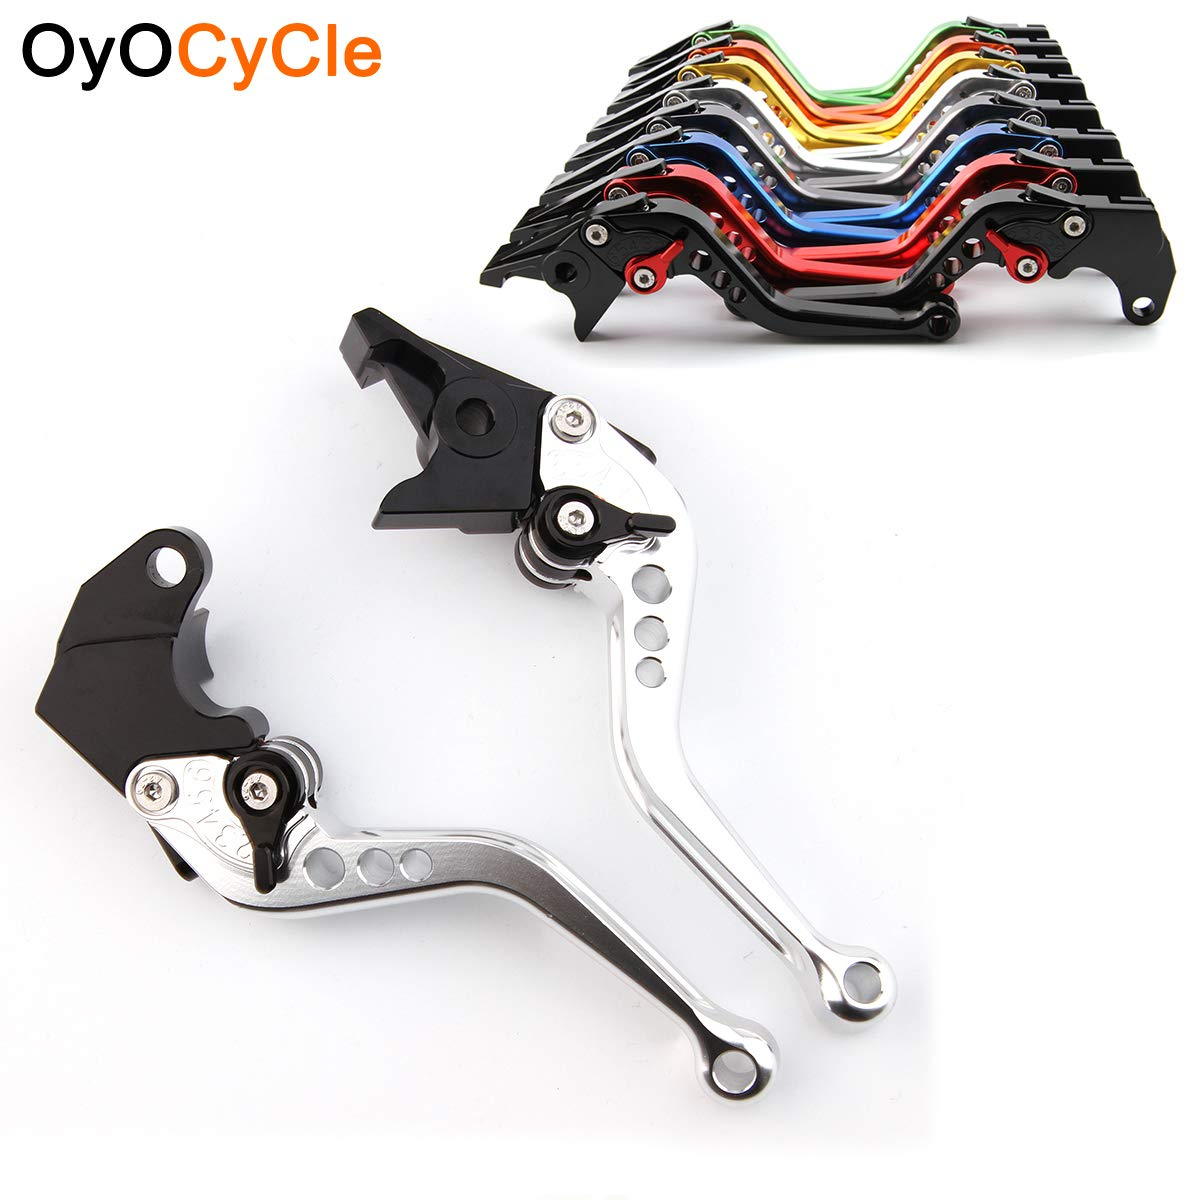 OyOCycle Short Brake Clutch Levers for Kawasaki Z1000SX/NINJA 1000/Tourer 2017-2018/Z1000/R 2017-2018/Z900RS